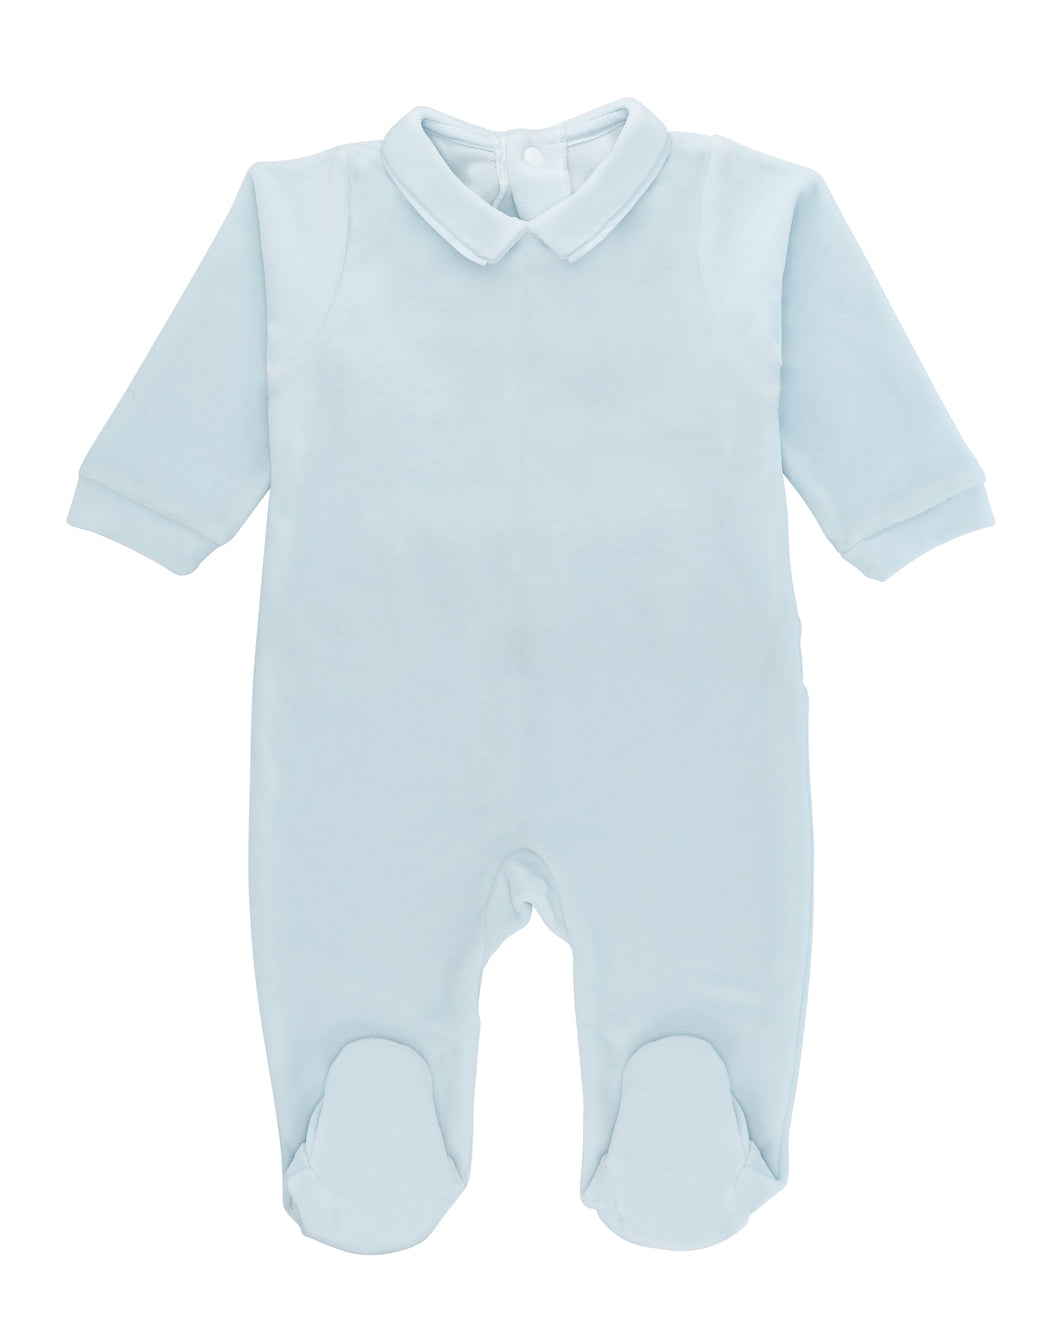 Blue Ultra-soft cotton baby one-piece